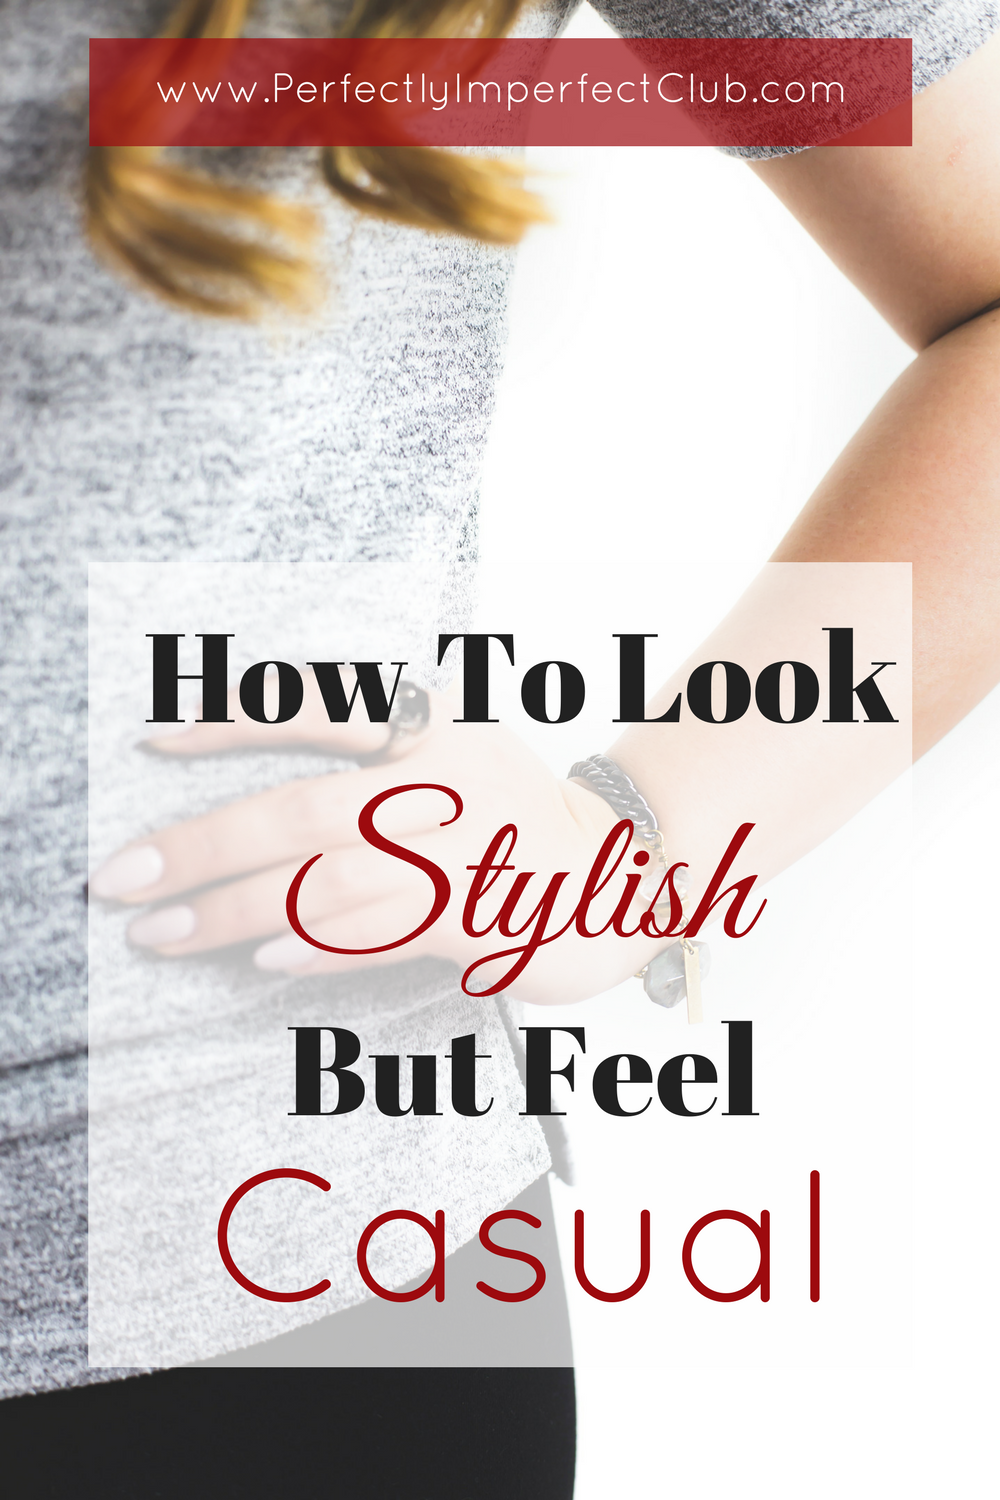 How To Look Stylish But Feel Casual